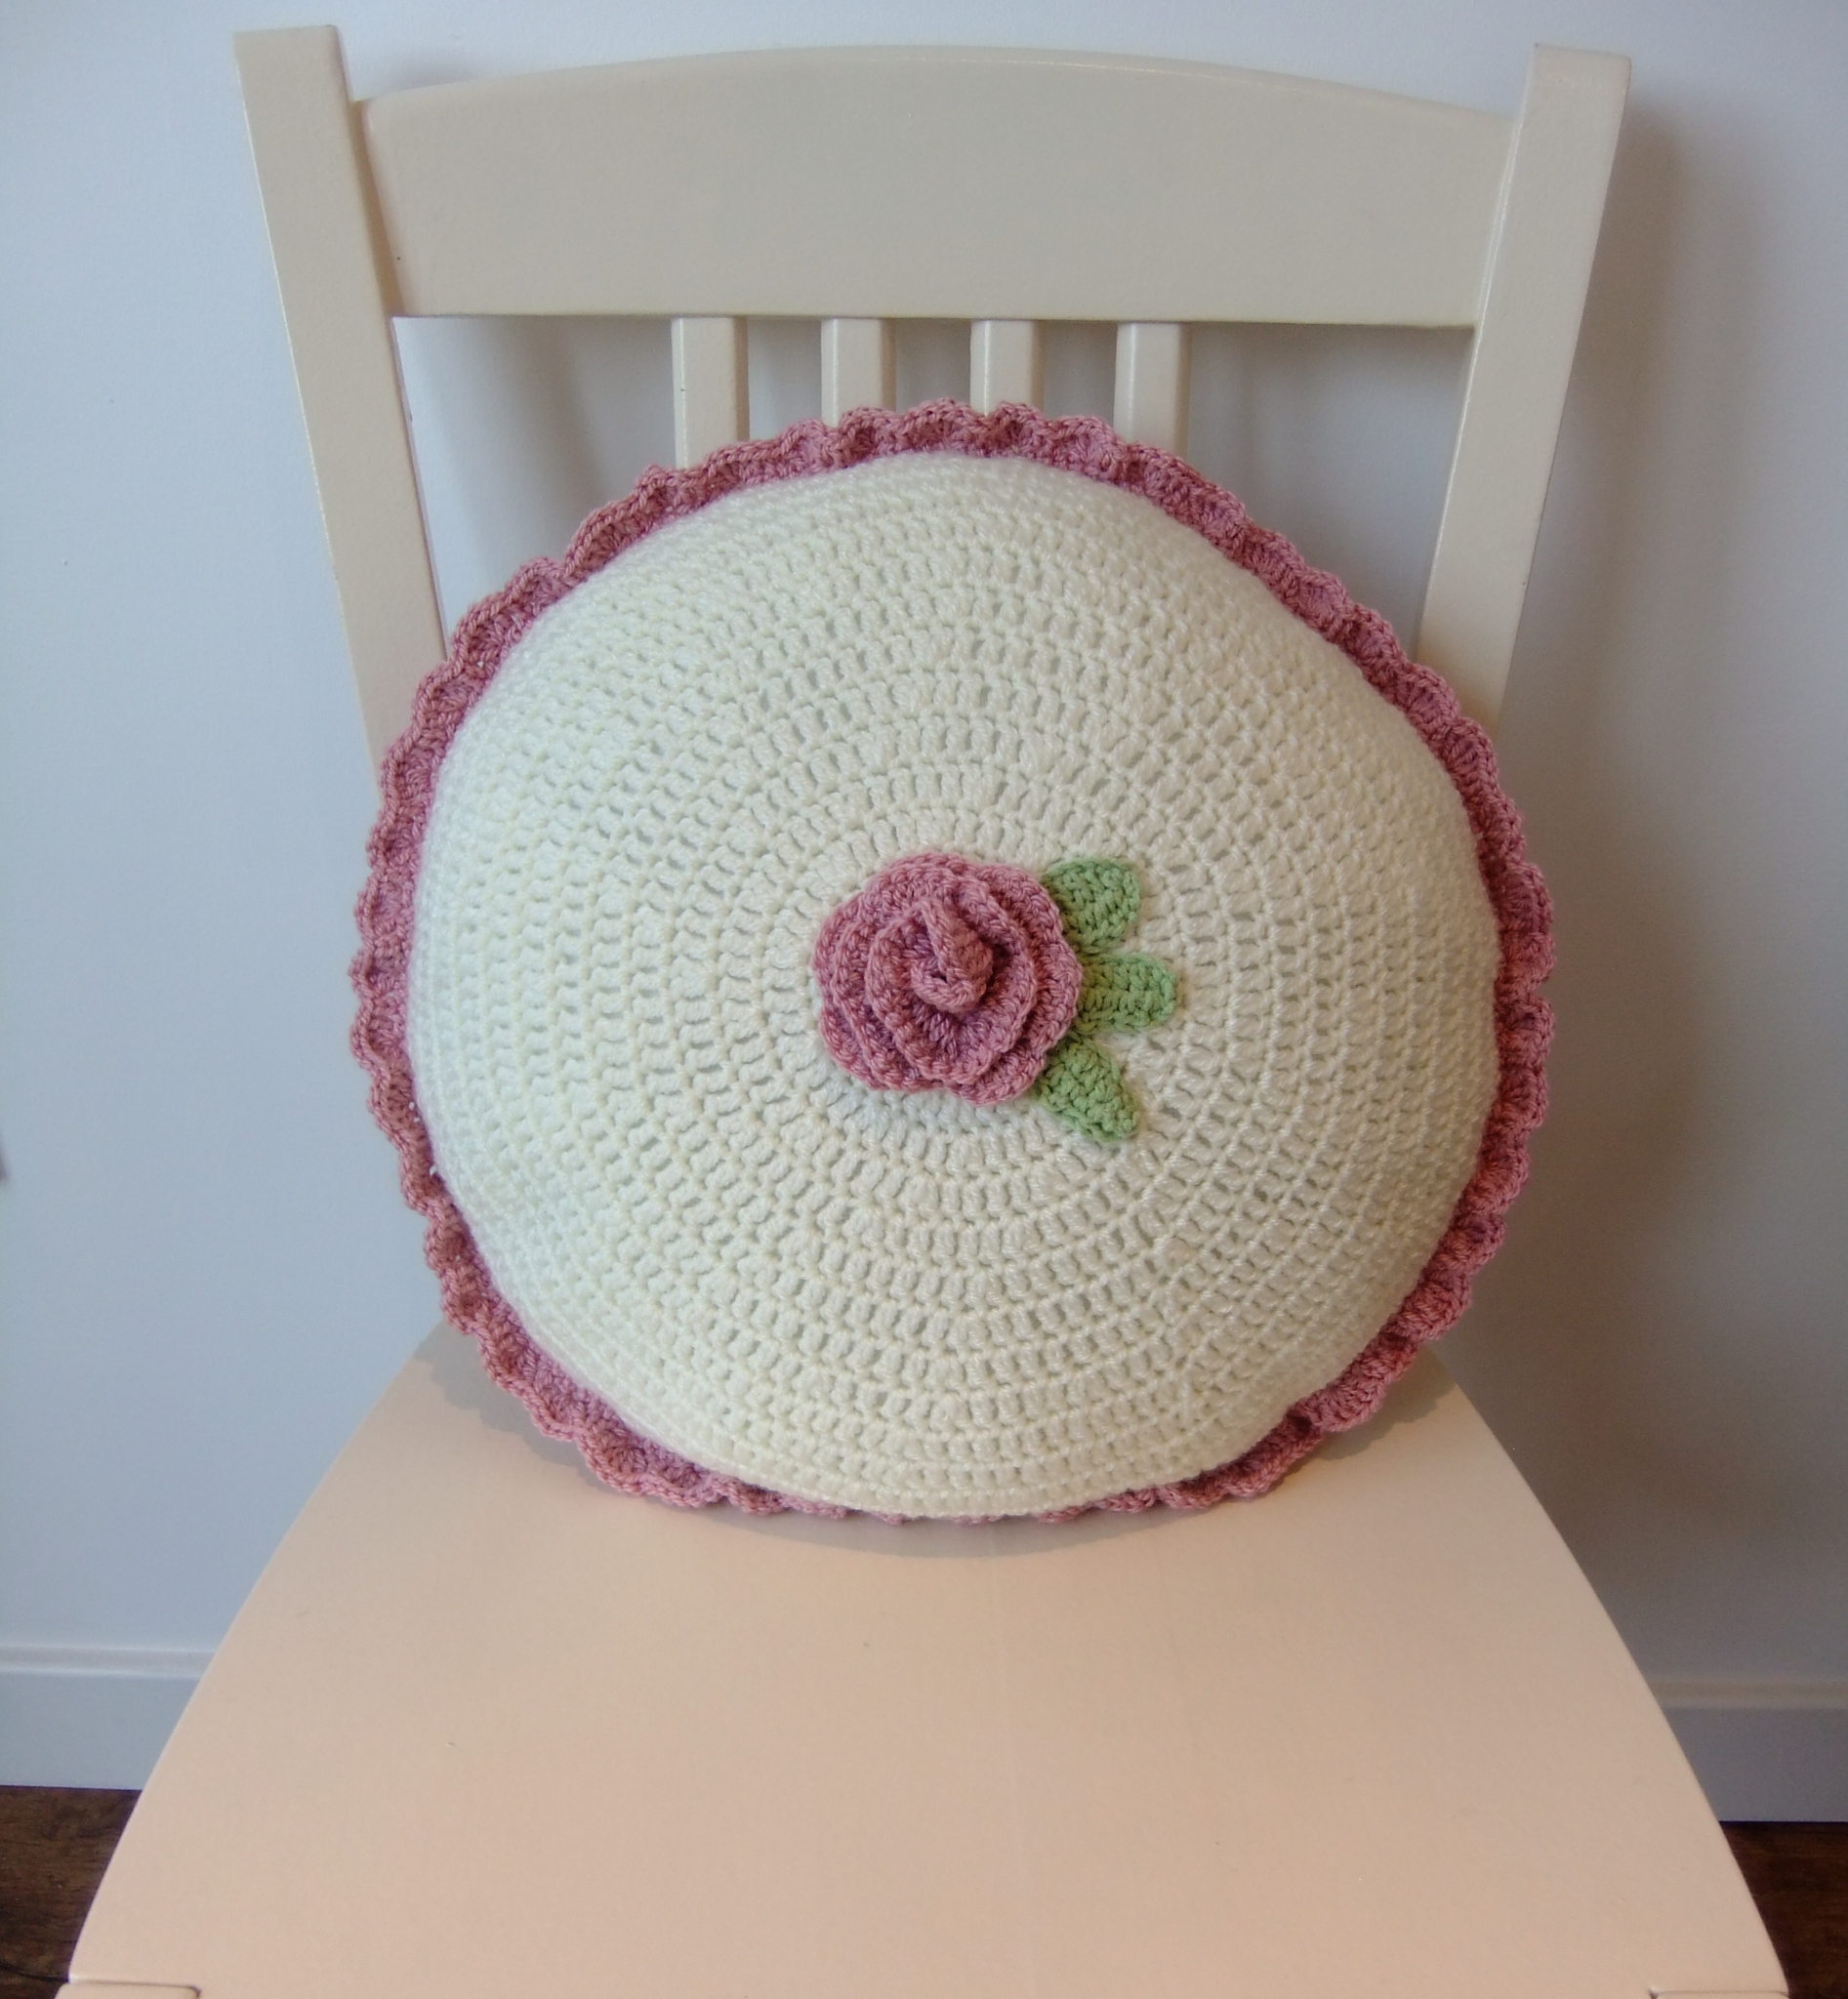 Knitting Pattern For Round Cushion Cover : Ladybird Diaries: Round Crocheted Cushion